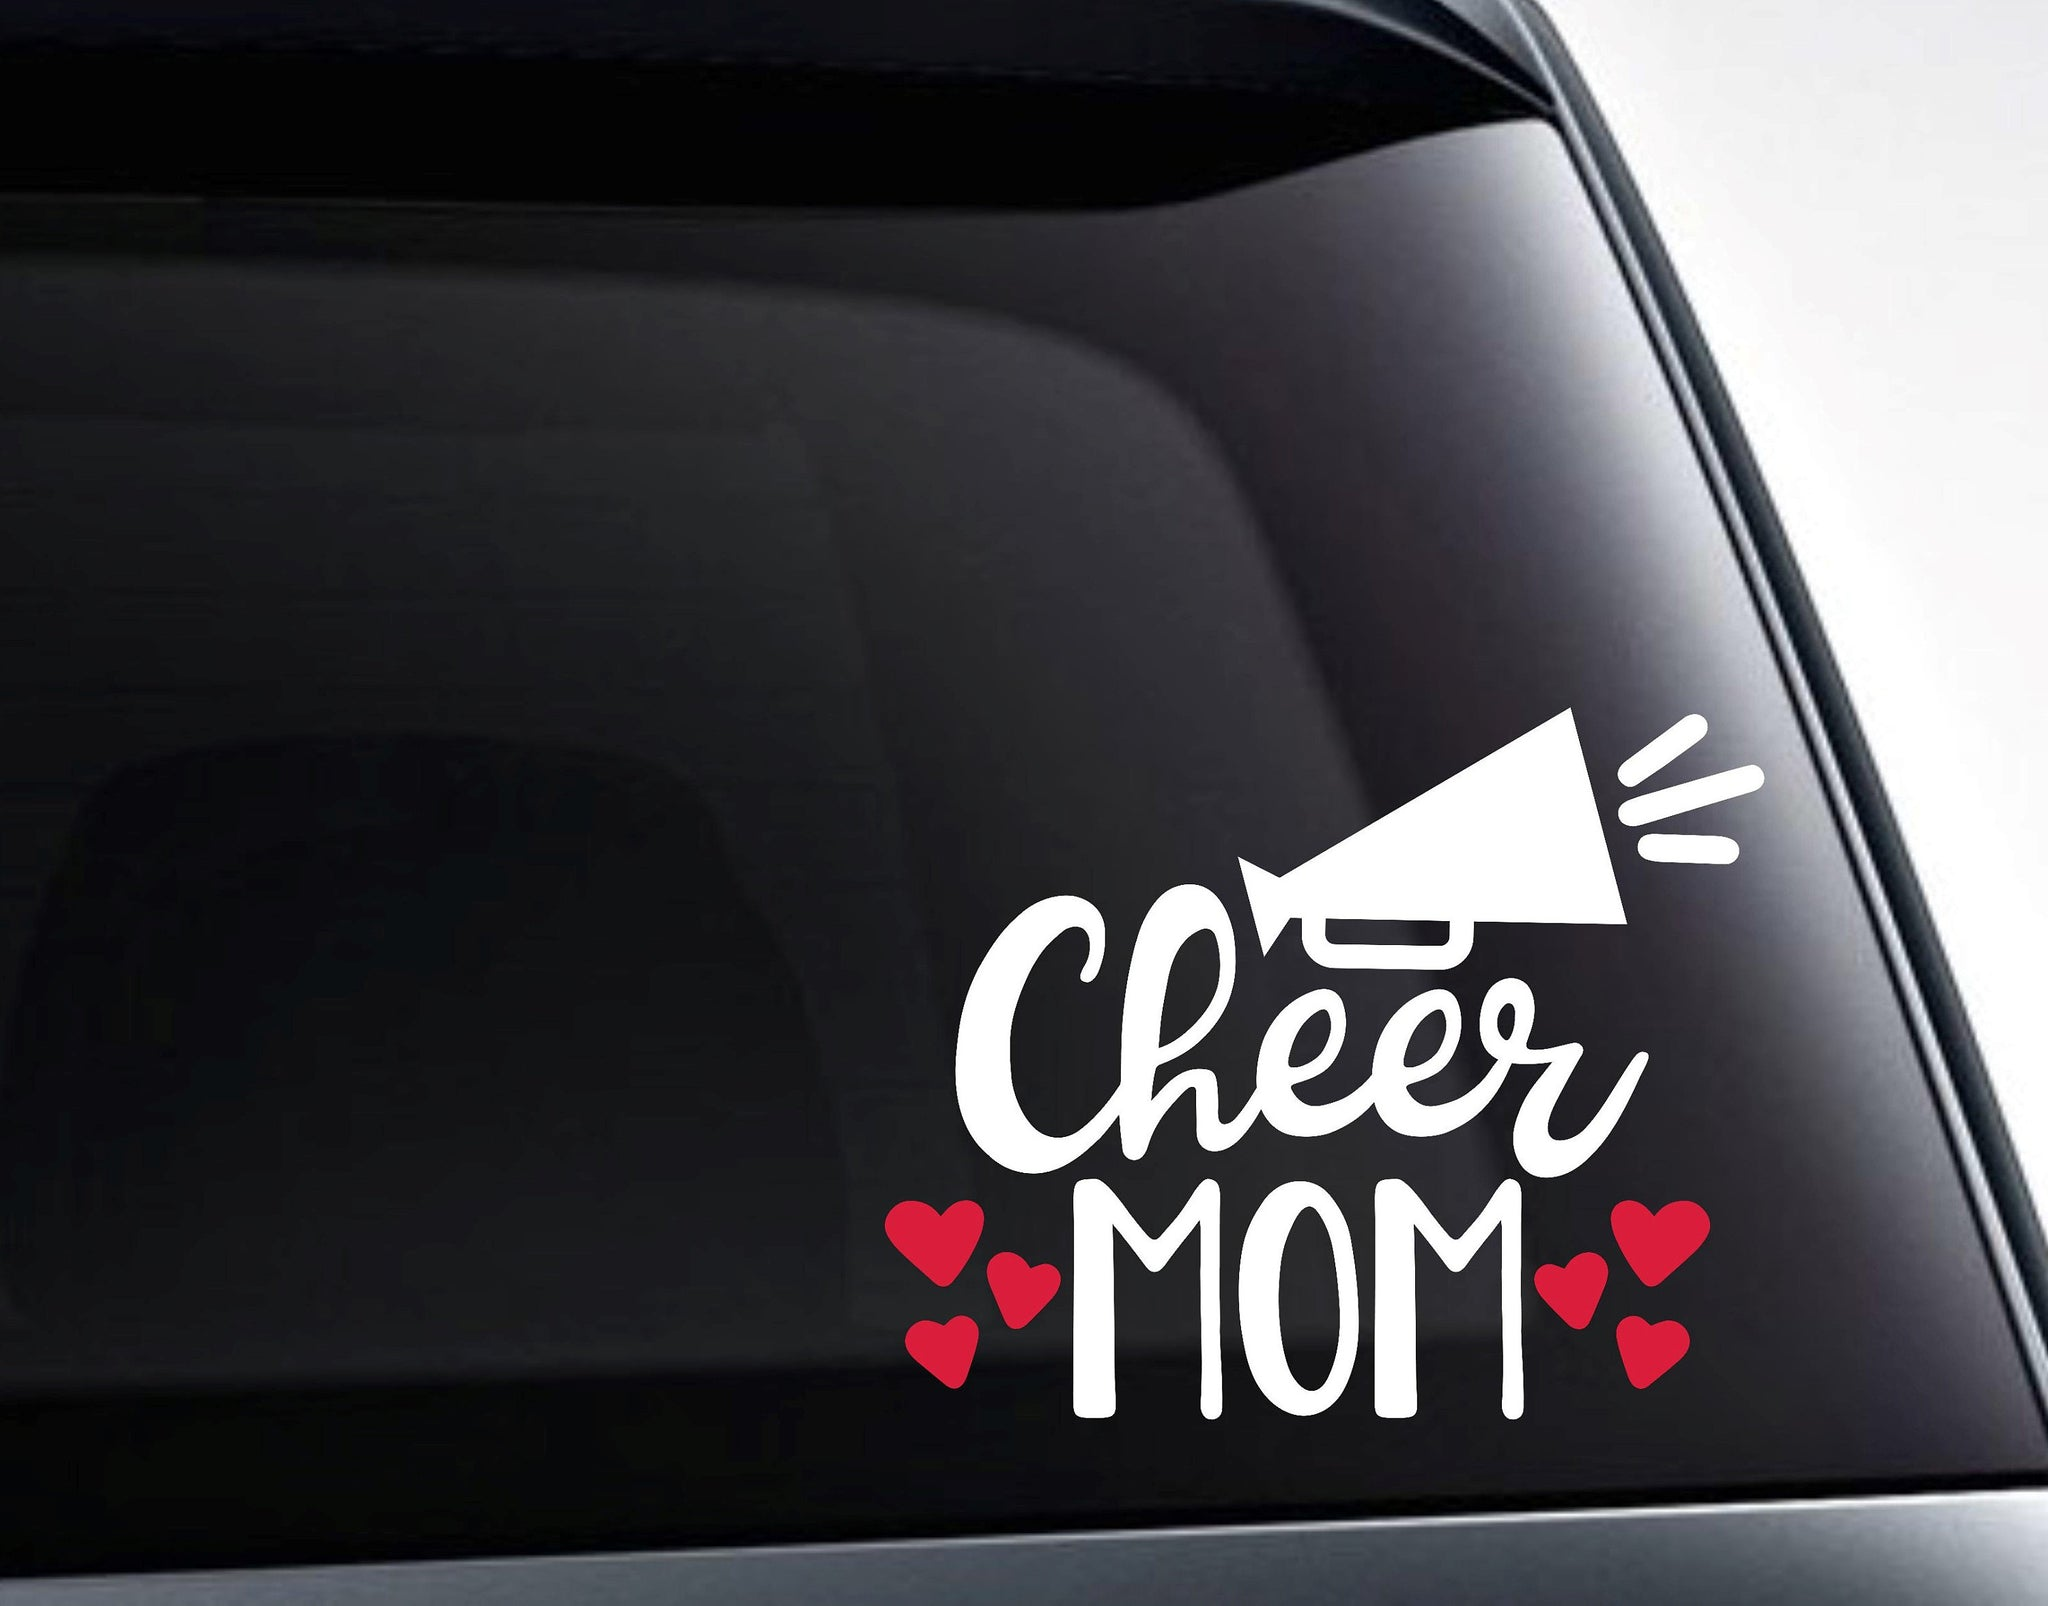 Cheer Mom Cheerleader Mom Hearts Vinyl Decal Sticker